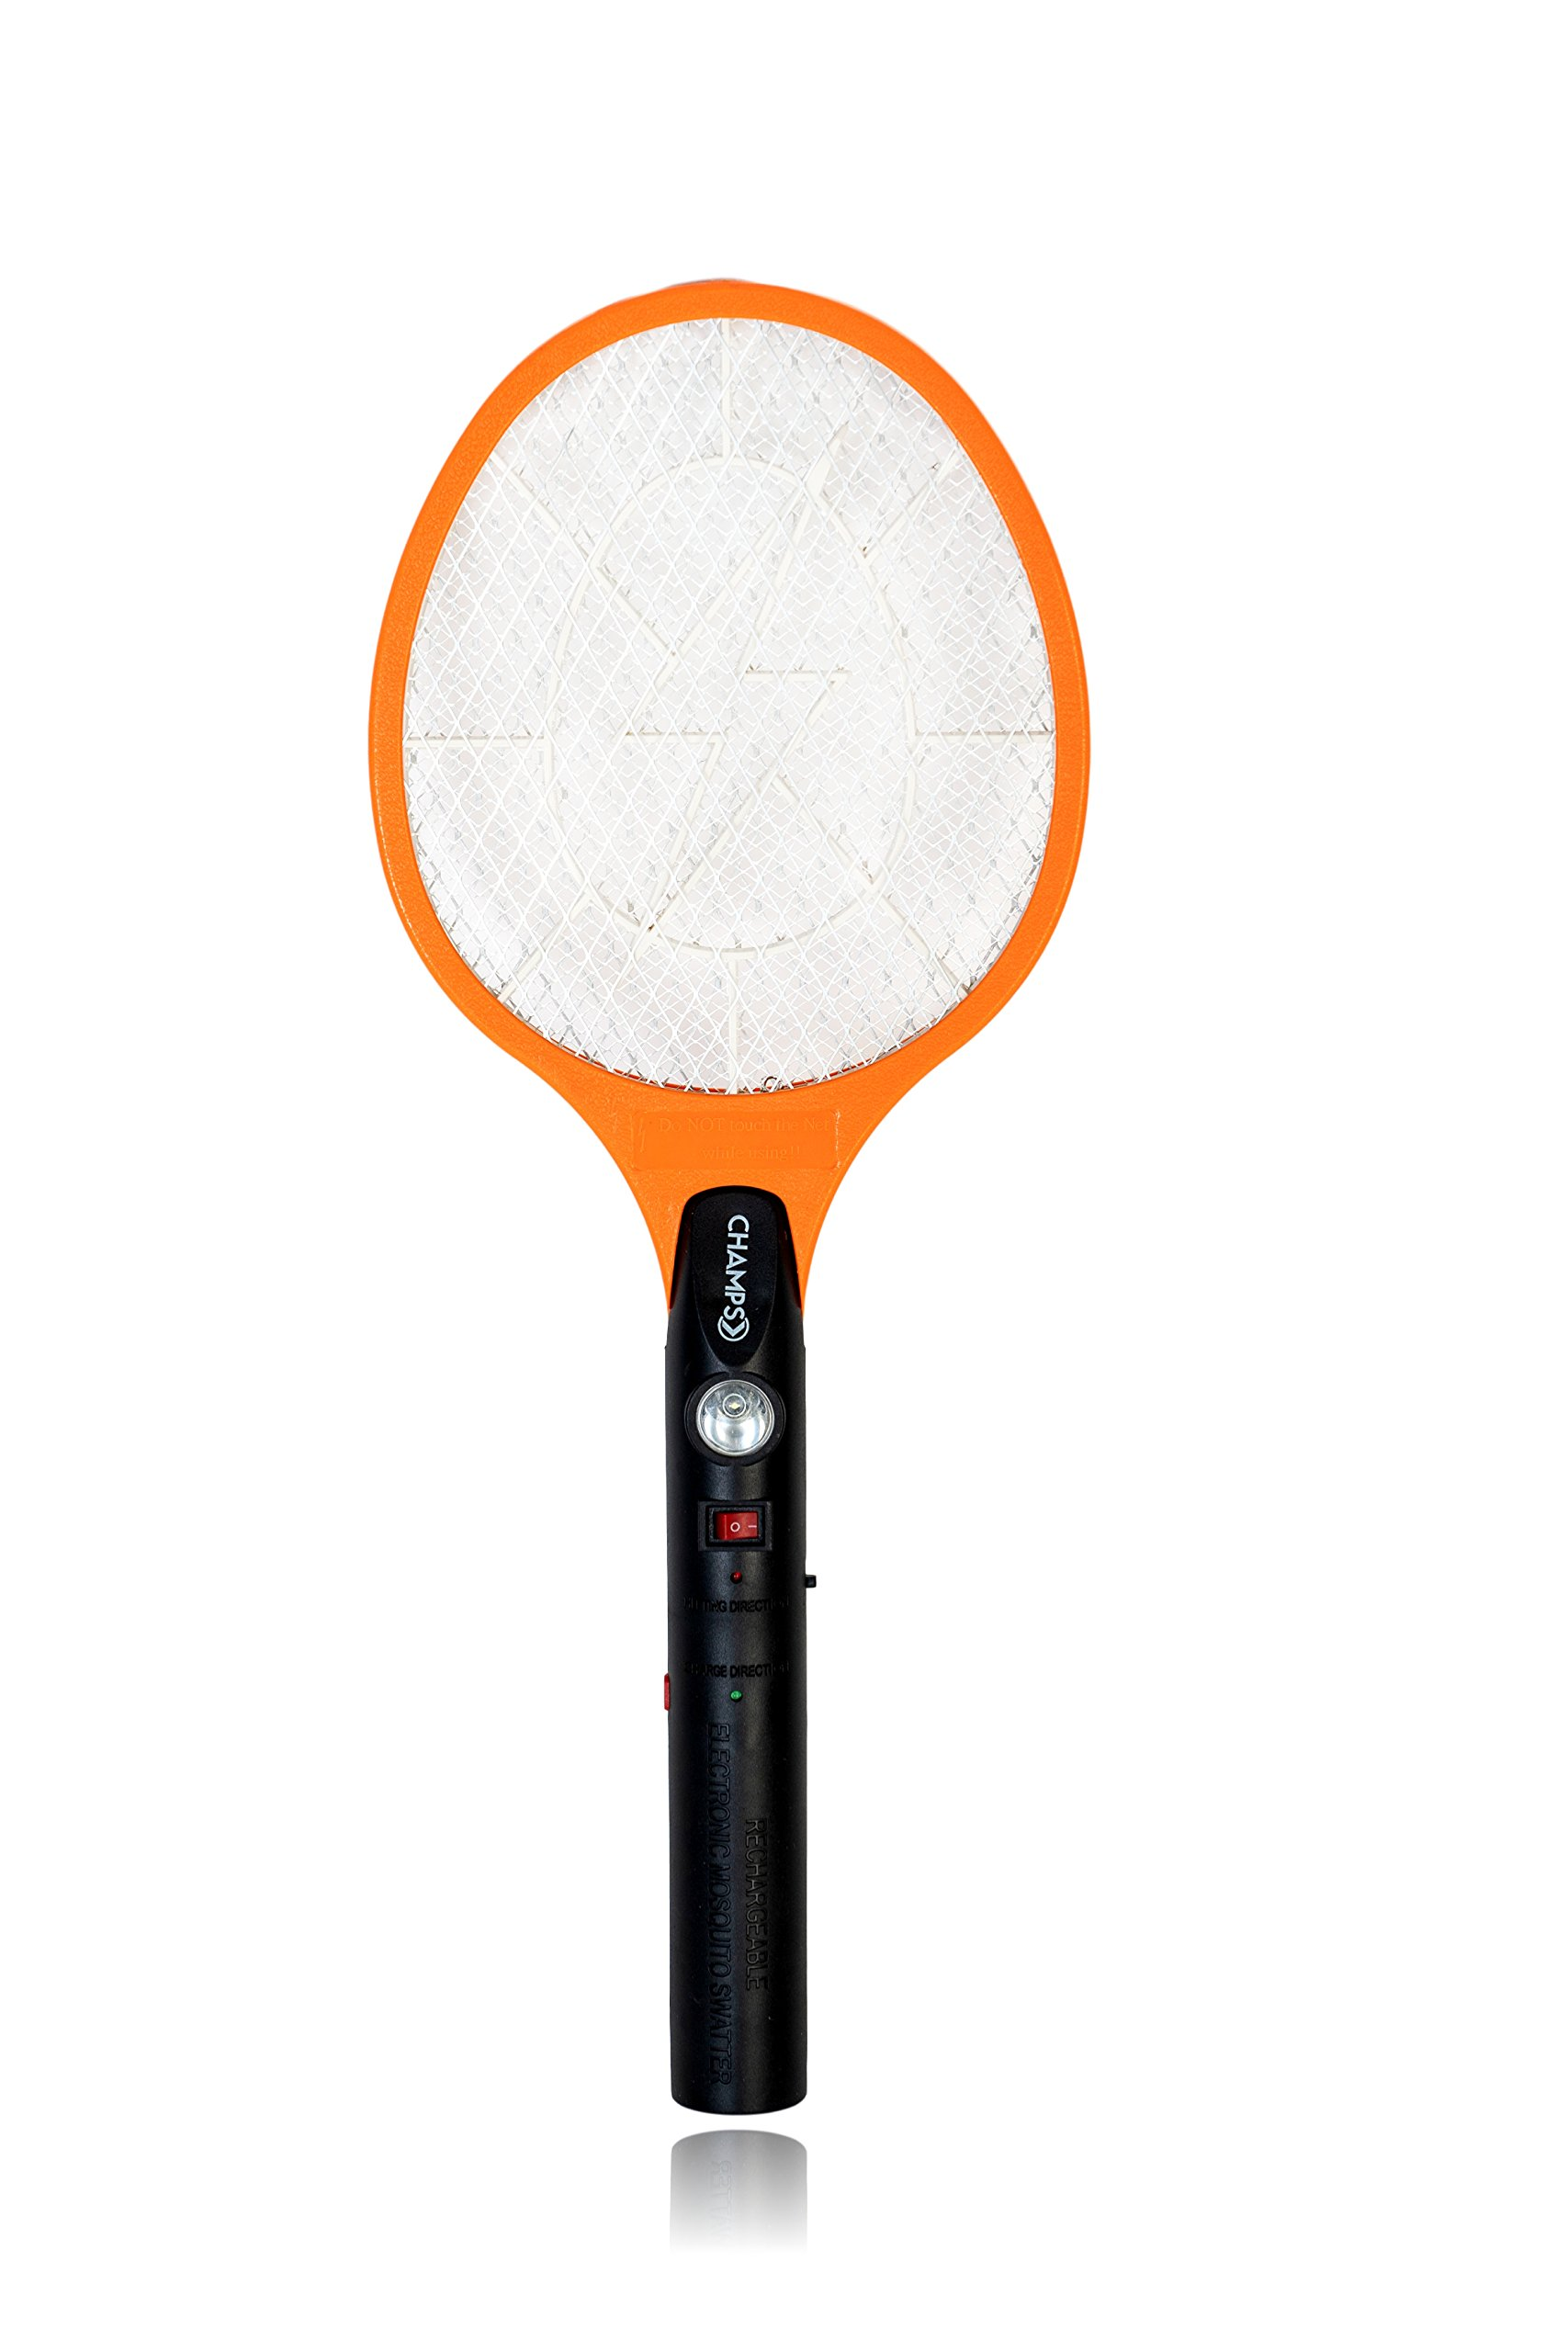 Champs Bug Zappers Electric Rechargeable Mosquito, Fly Killer and Bug Zapper Racket, 3000 Volt, Wall Plug Charge, For Indoor Outdoor Use